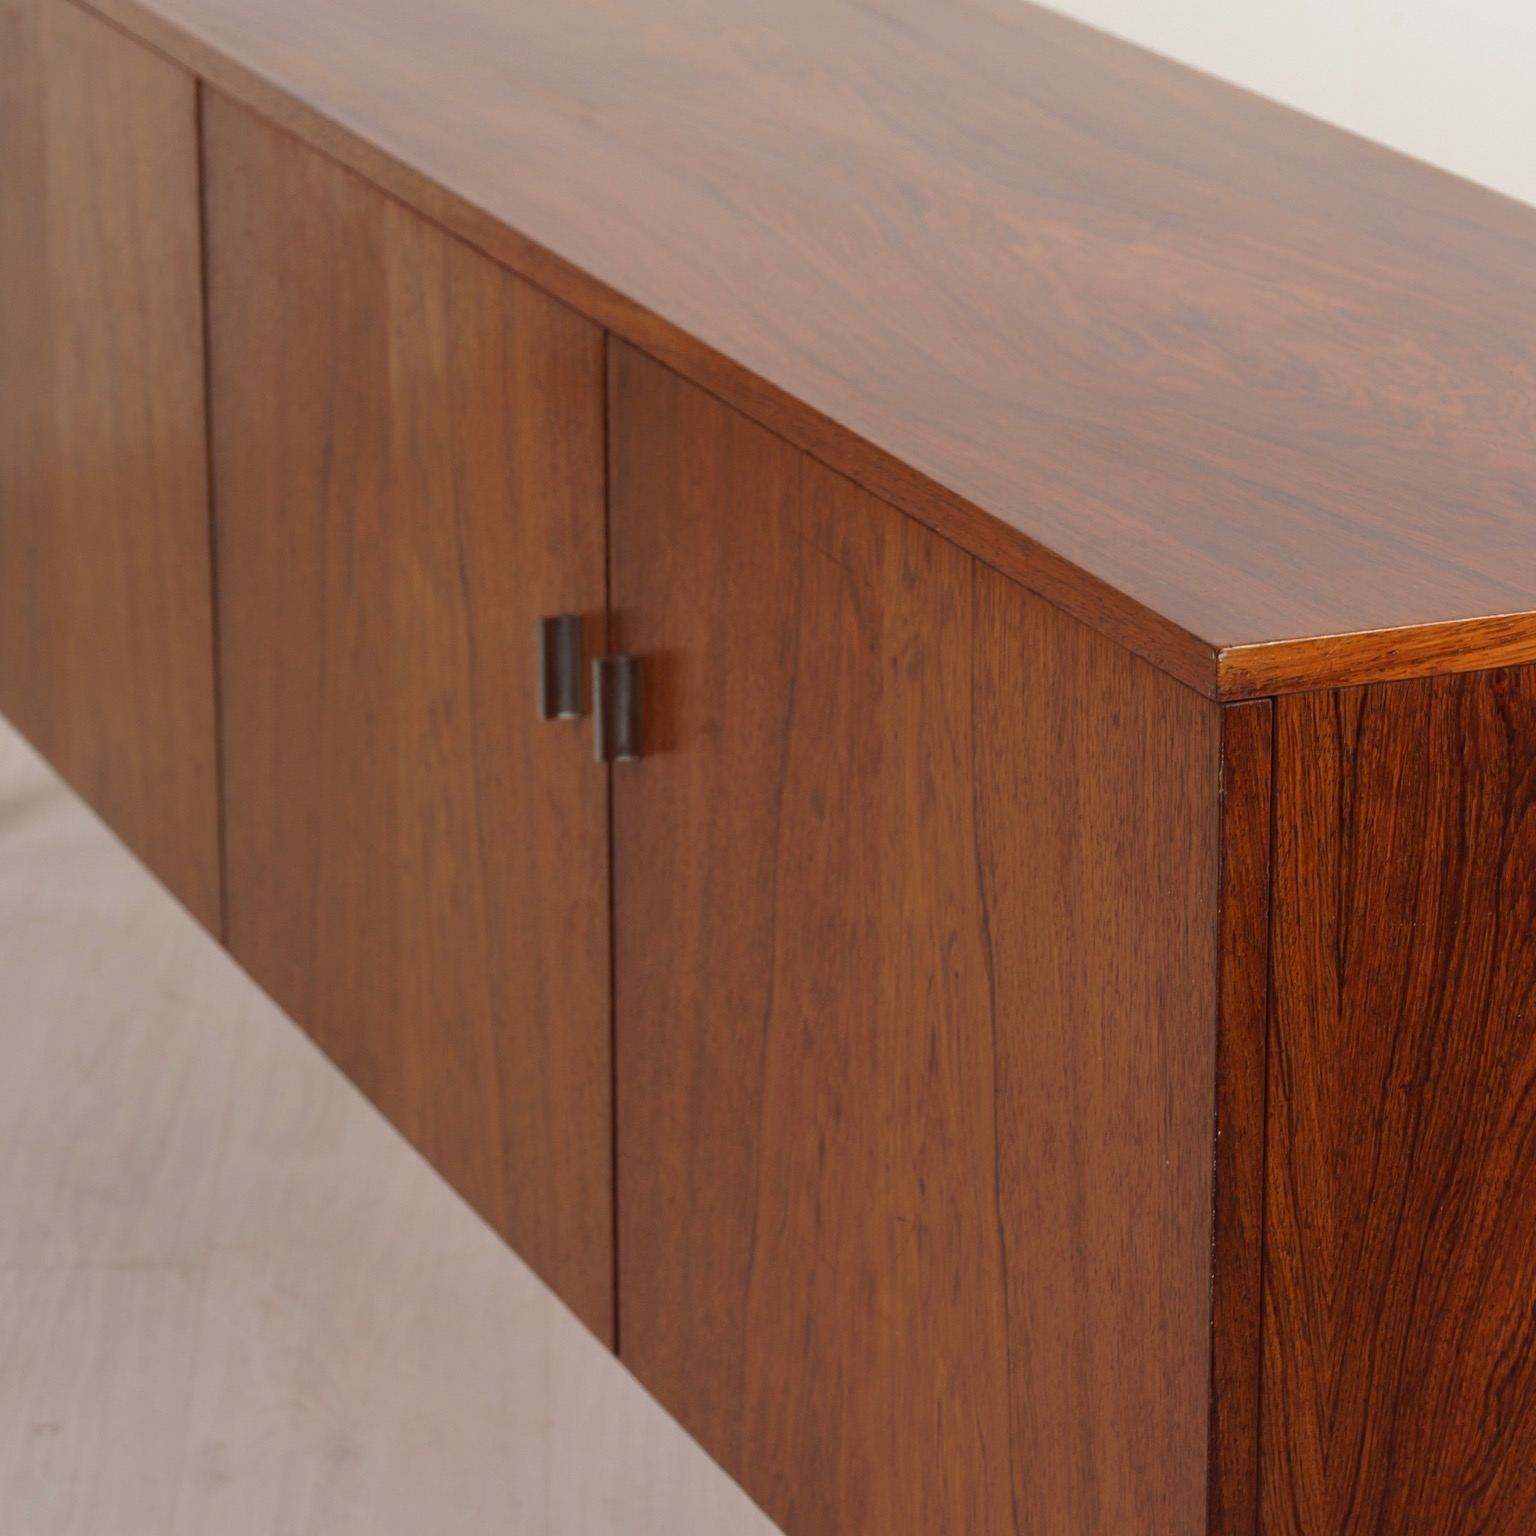 Vintage Sideboard Made Of Rosewood, 1960S - Ztijl Design with Vintage Brown Textured Sideboards (Image 26 of 30)